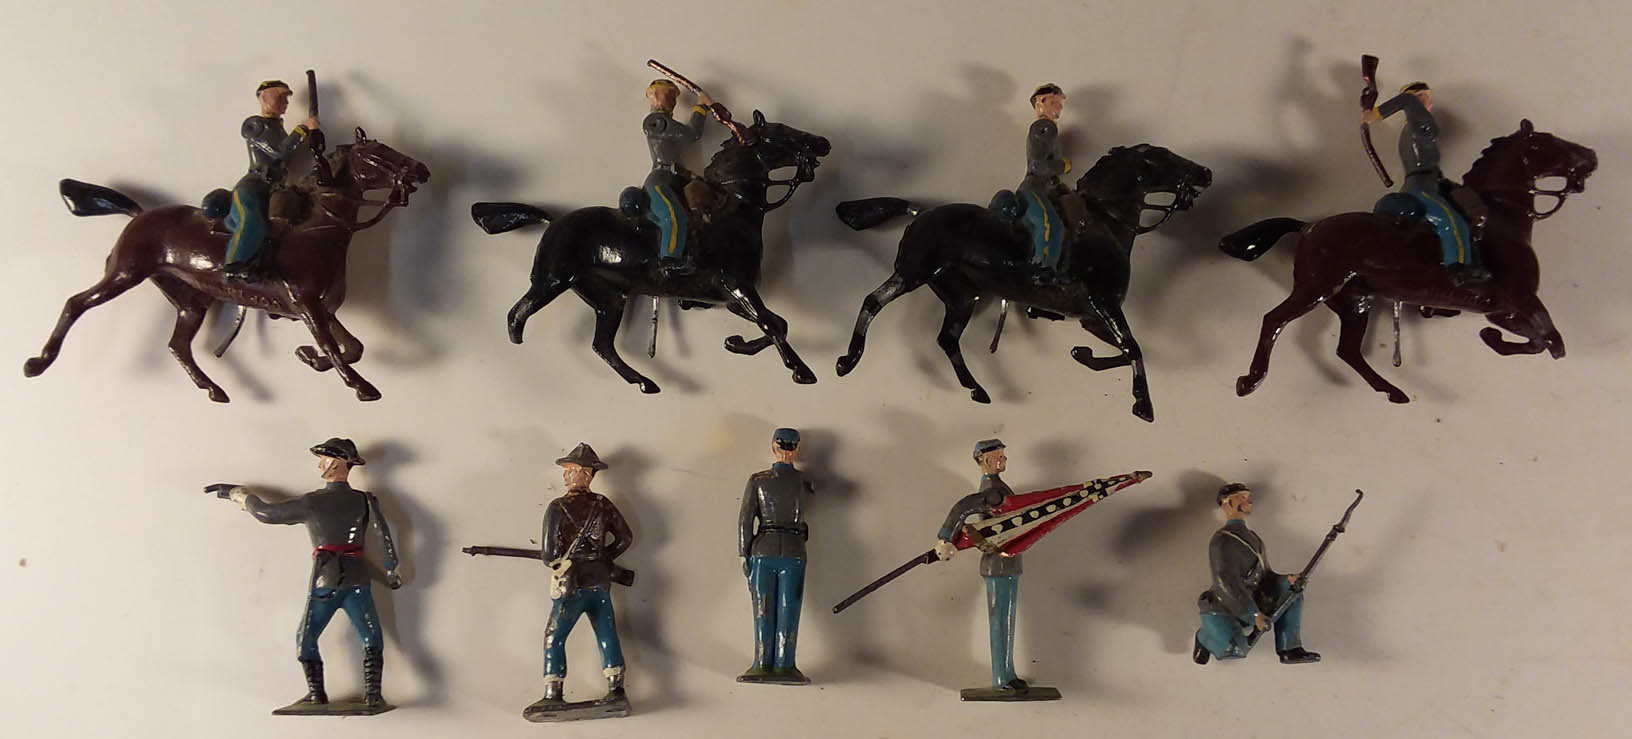 Buckingham Cast Metal Johillco lead soldier set 116 The Confederacy 1950s